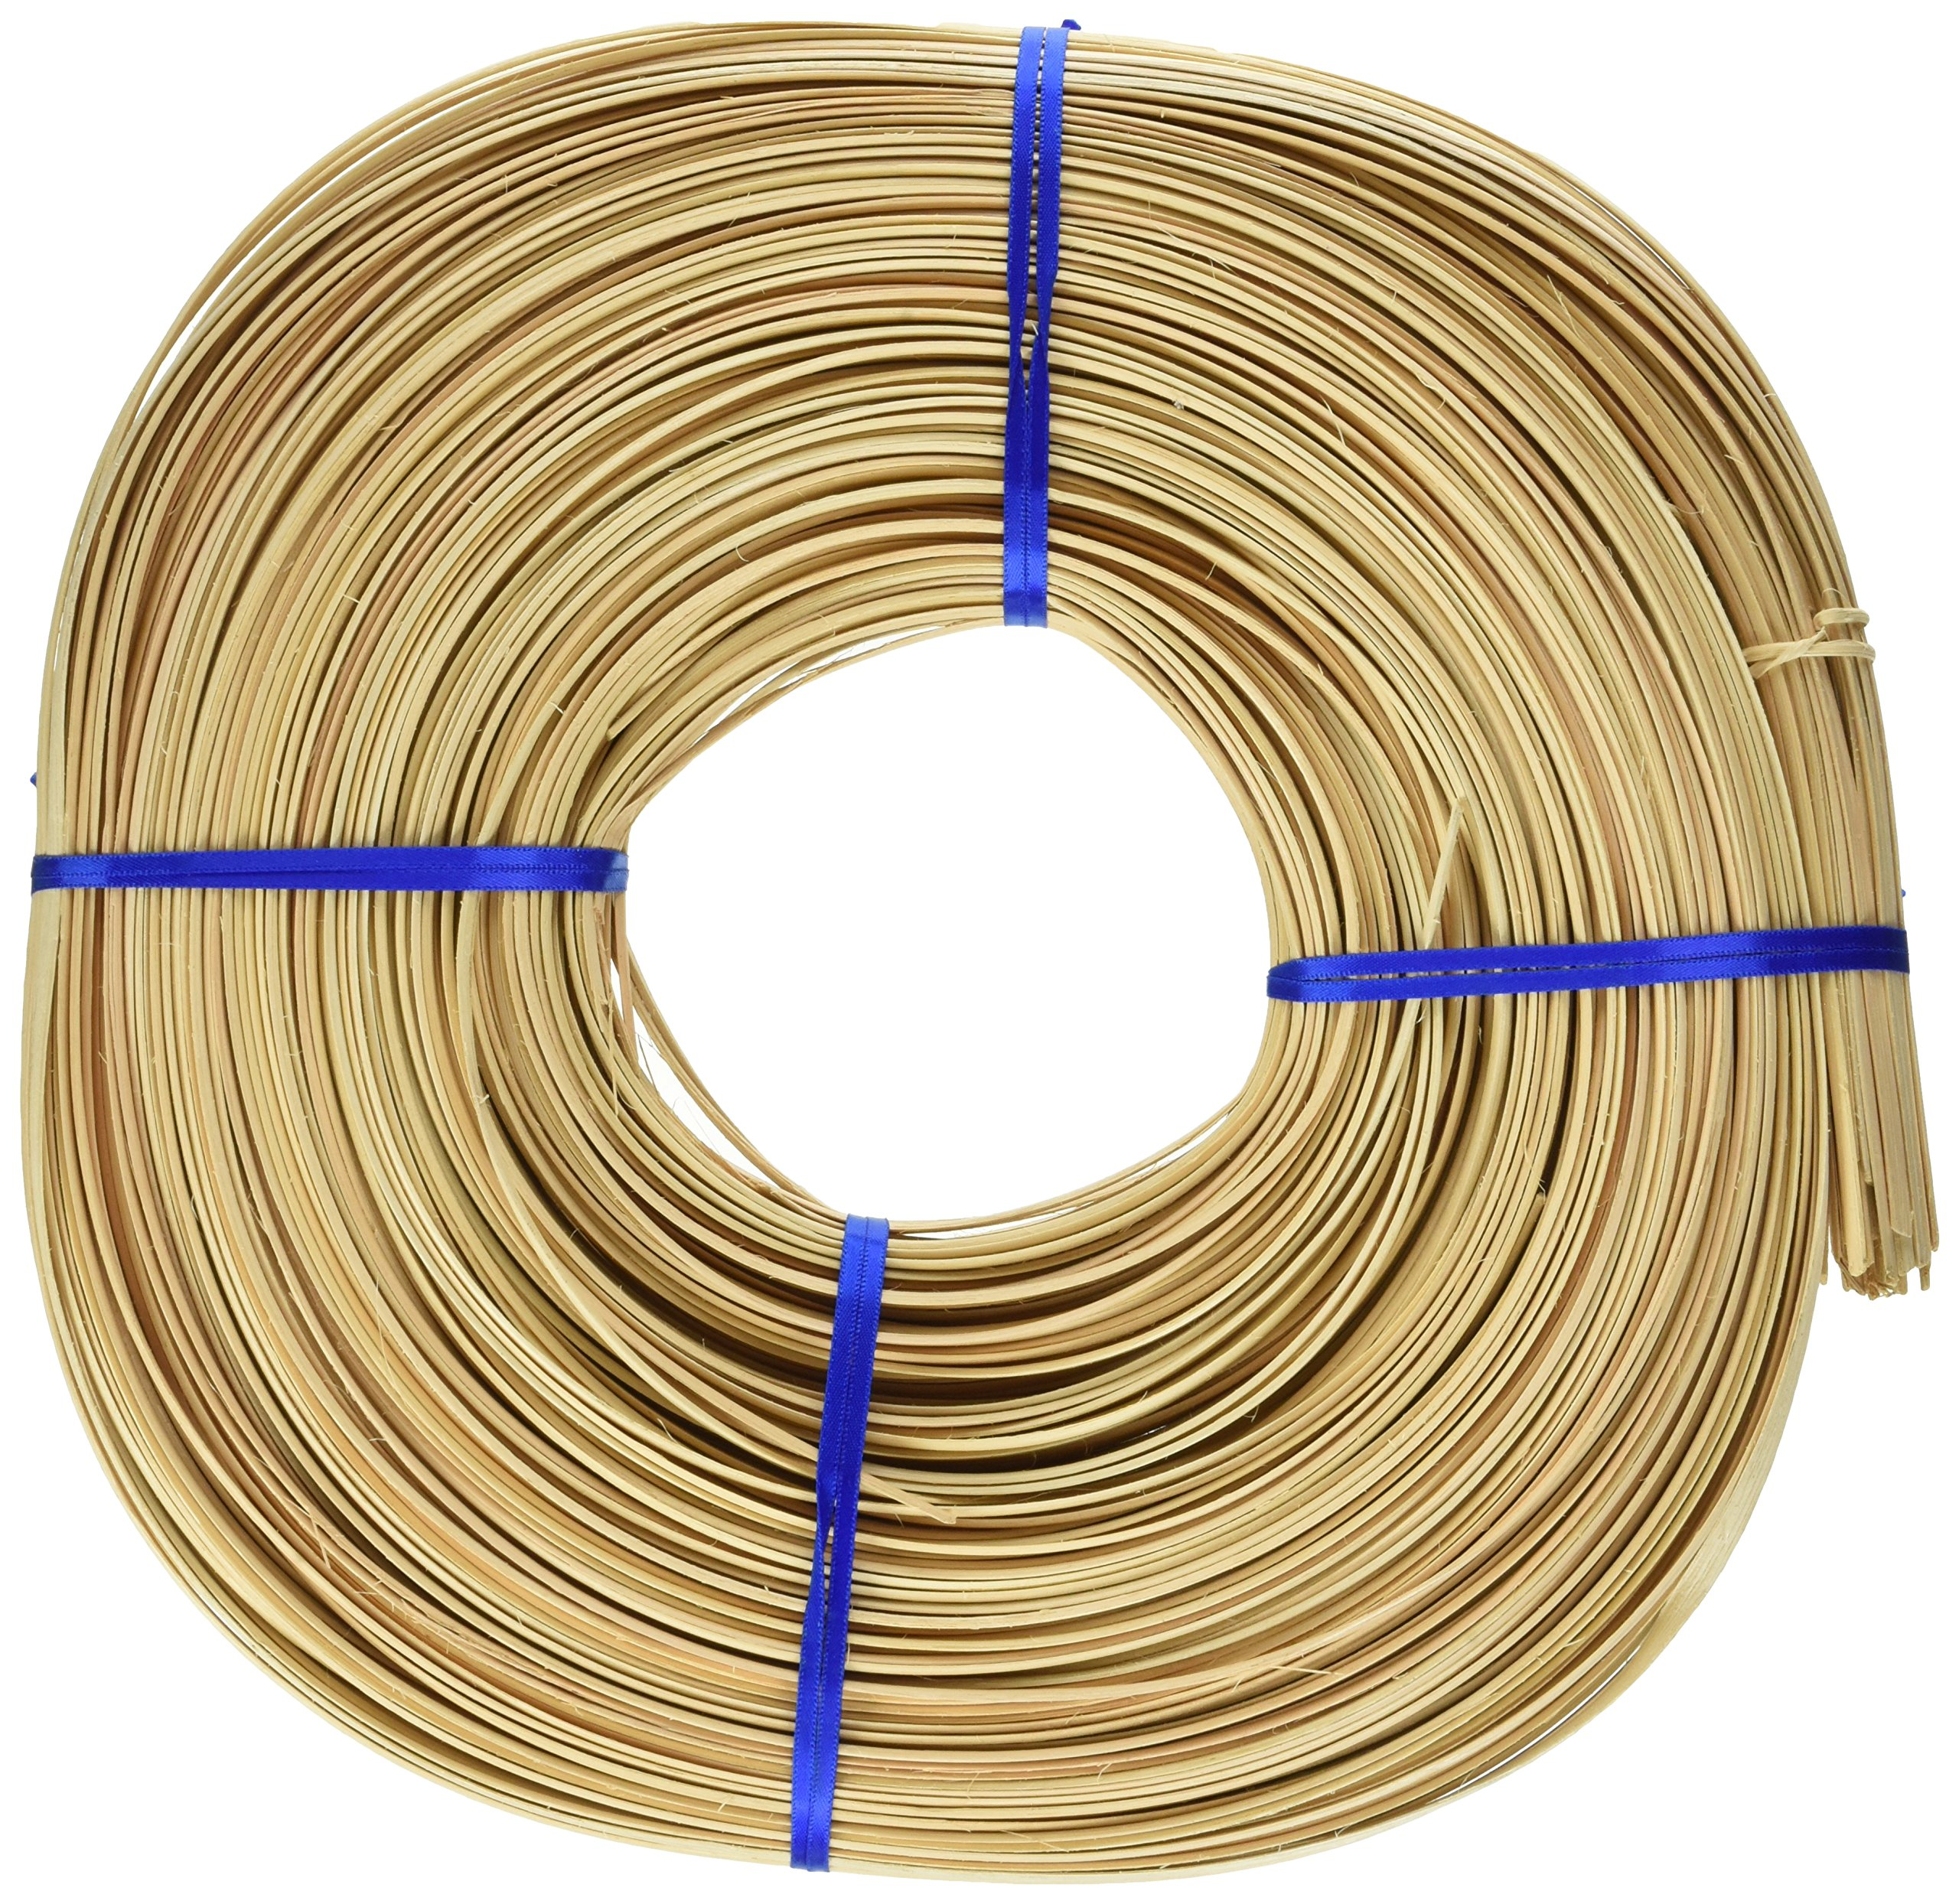 Commonwealth Basket Flat Oval Reed 3/16-Inch 1-Pound Coil, Approximately 275-Feet